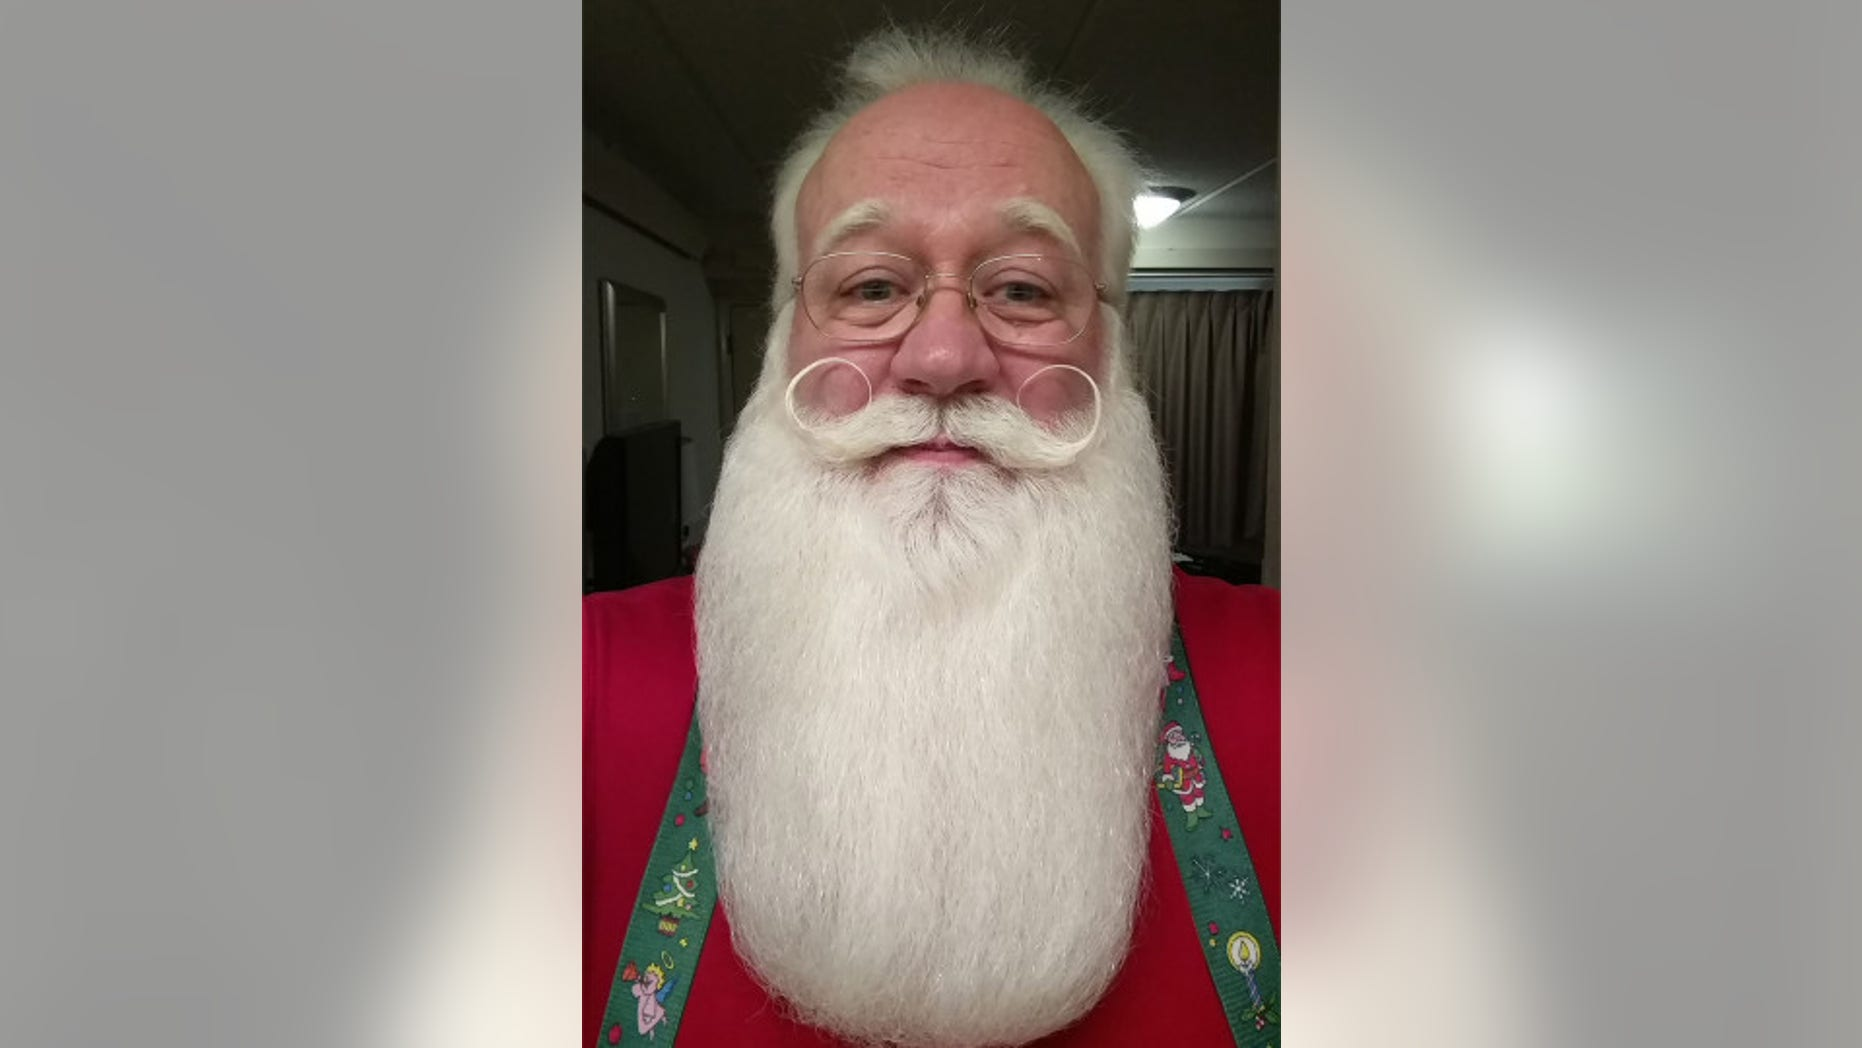 Eric Schmitt-Matzen volunteers as Santa Claus at a local Tennessee hospital.